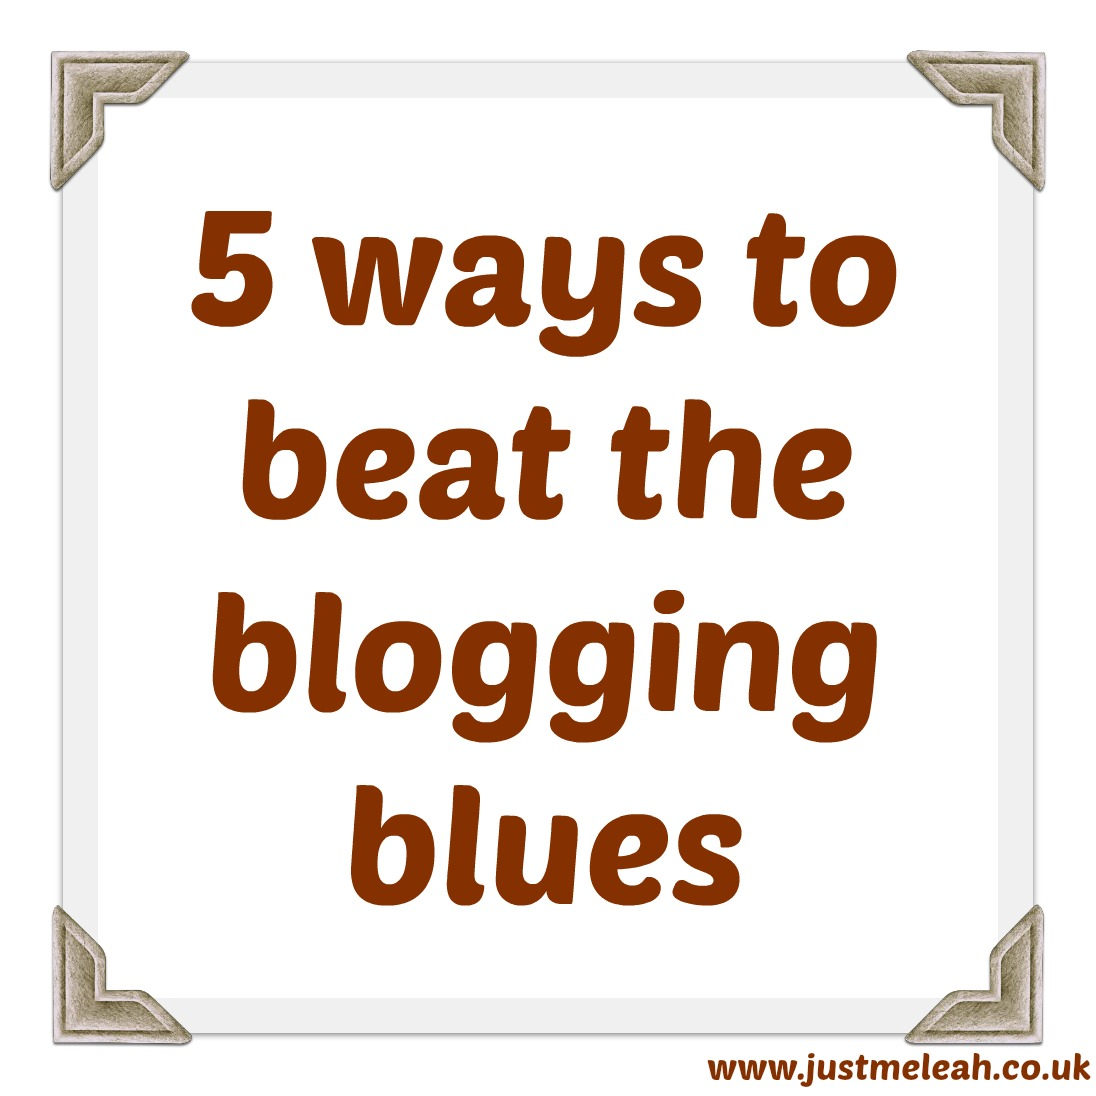 5 WAYS TO BEAT THE BLOGGING BLUES